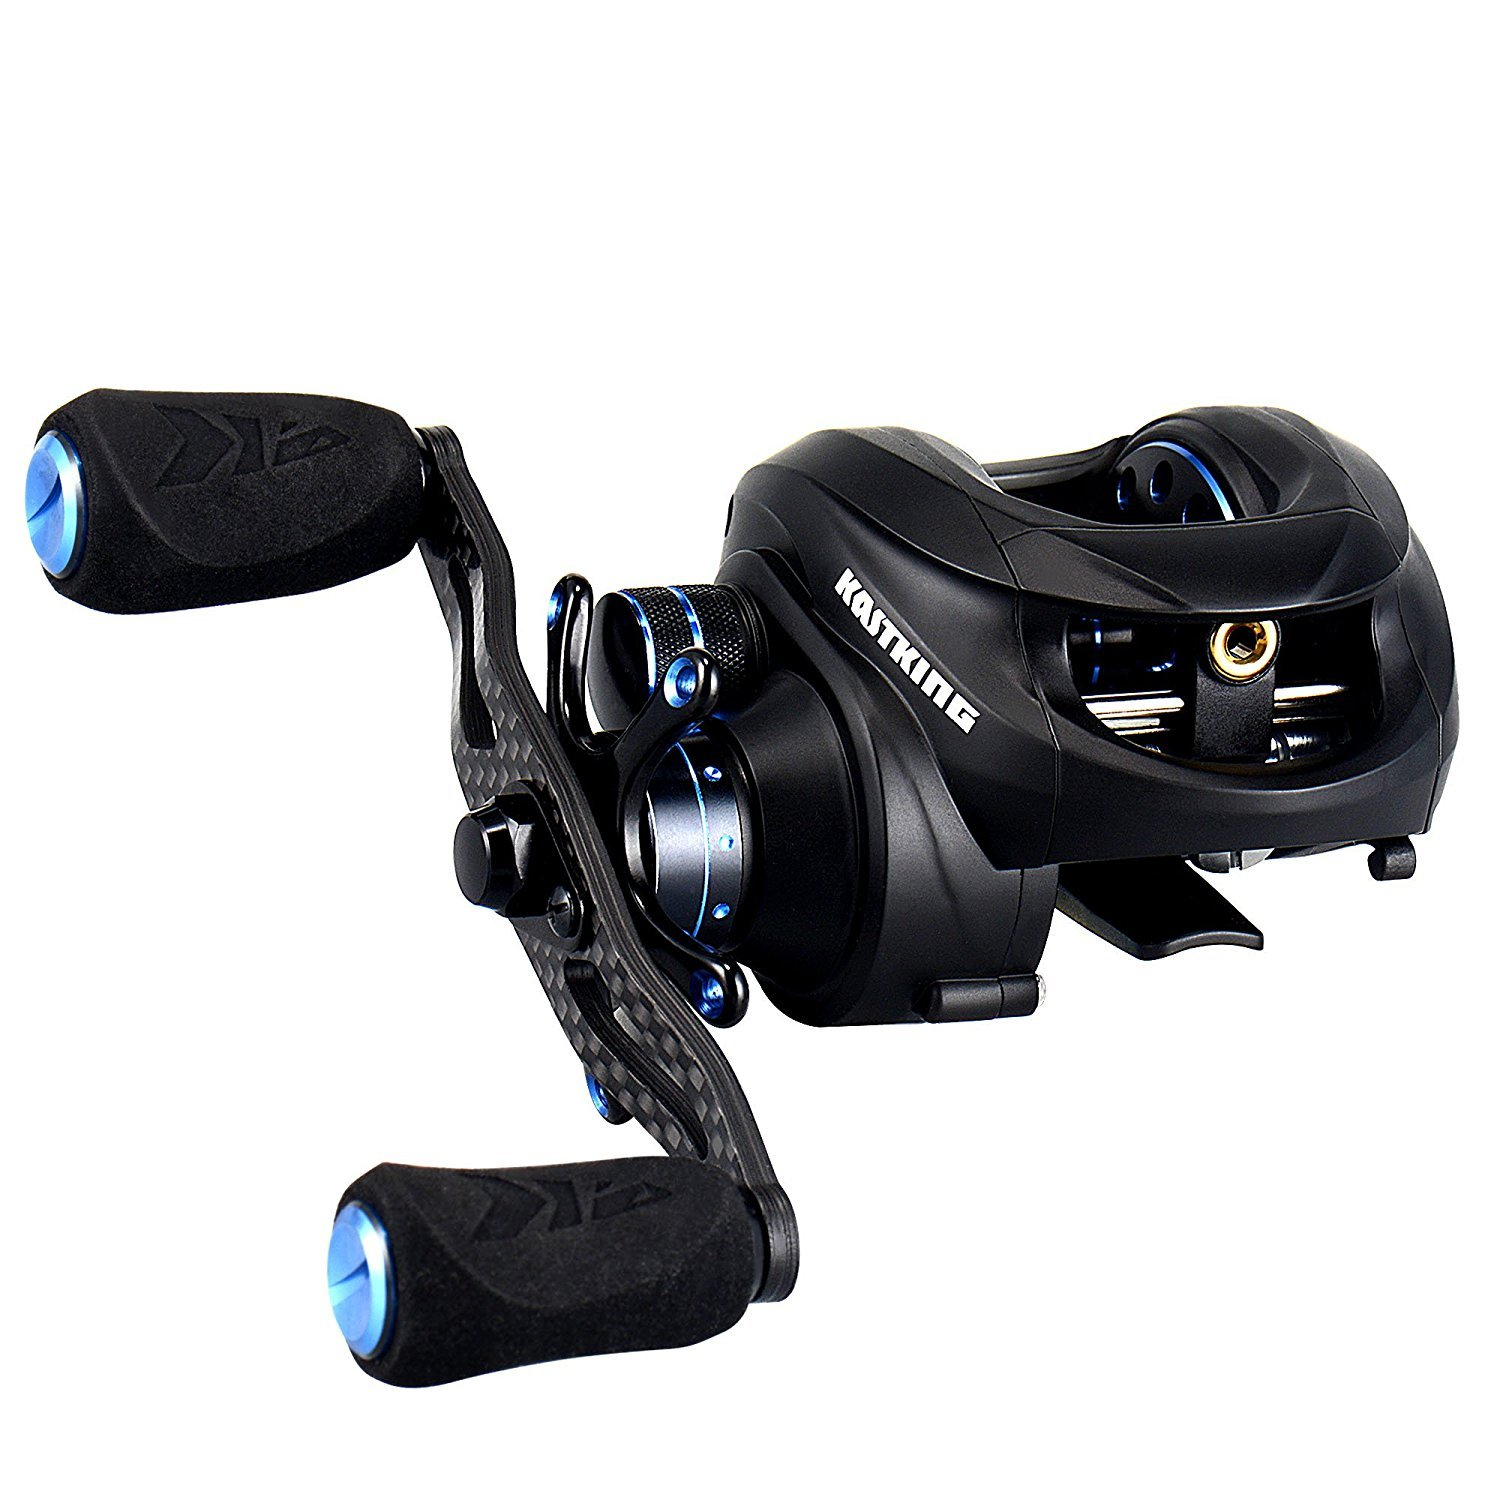 KastKing New Assassin Carbon Baitcasting Reel